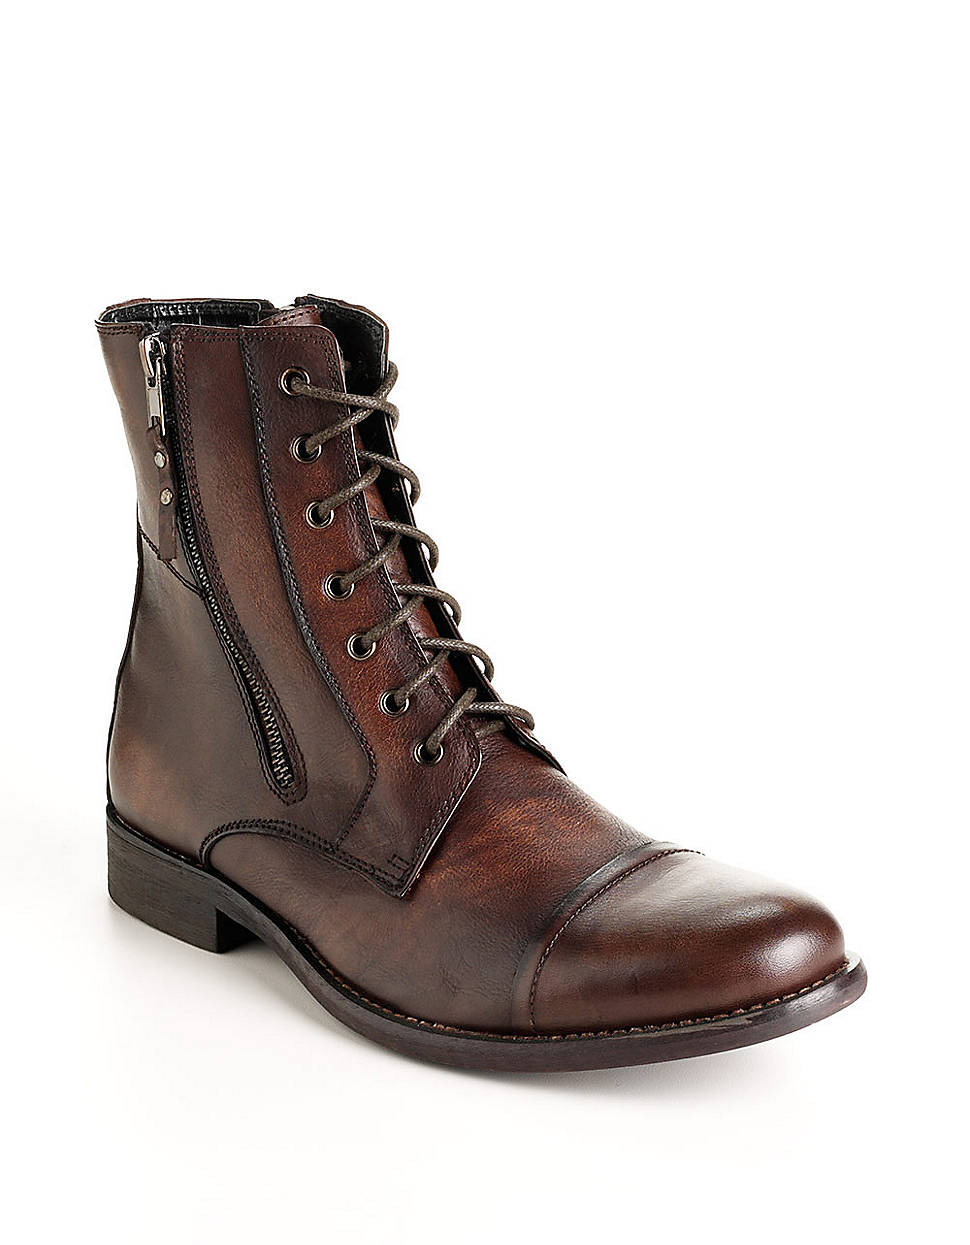 Kenneth Cole Mens Reaction Shoes